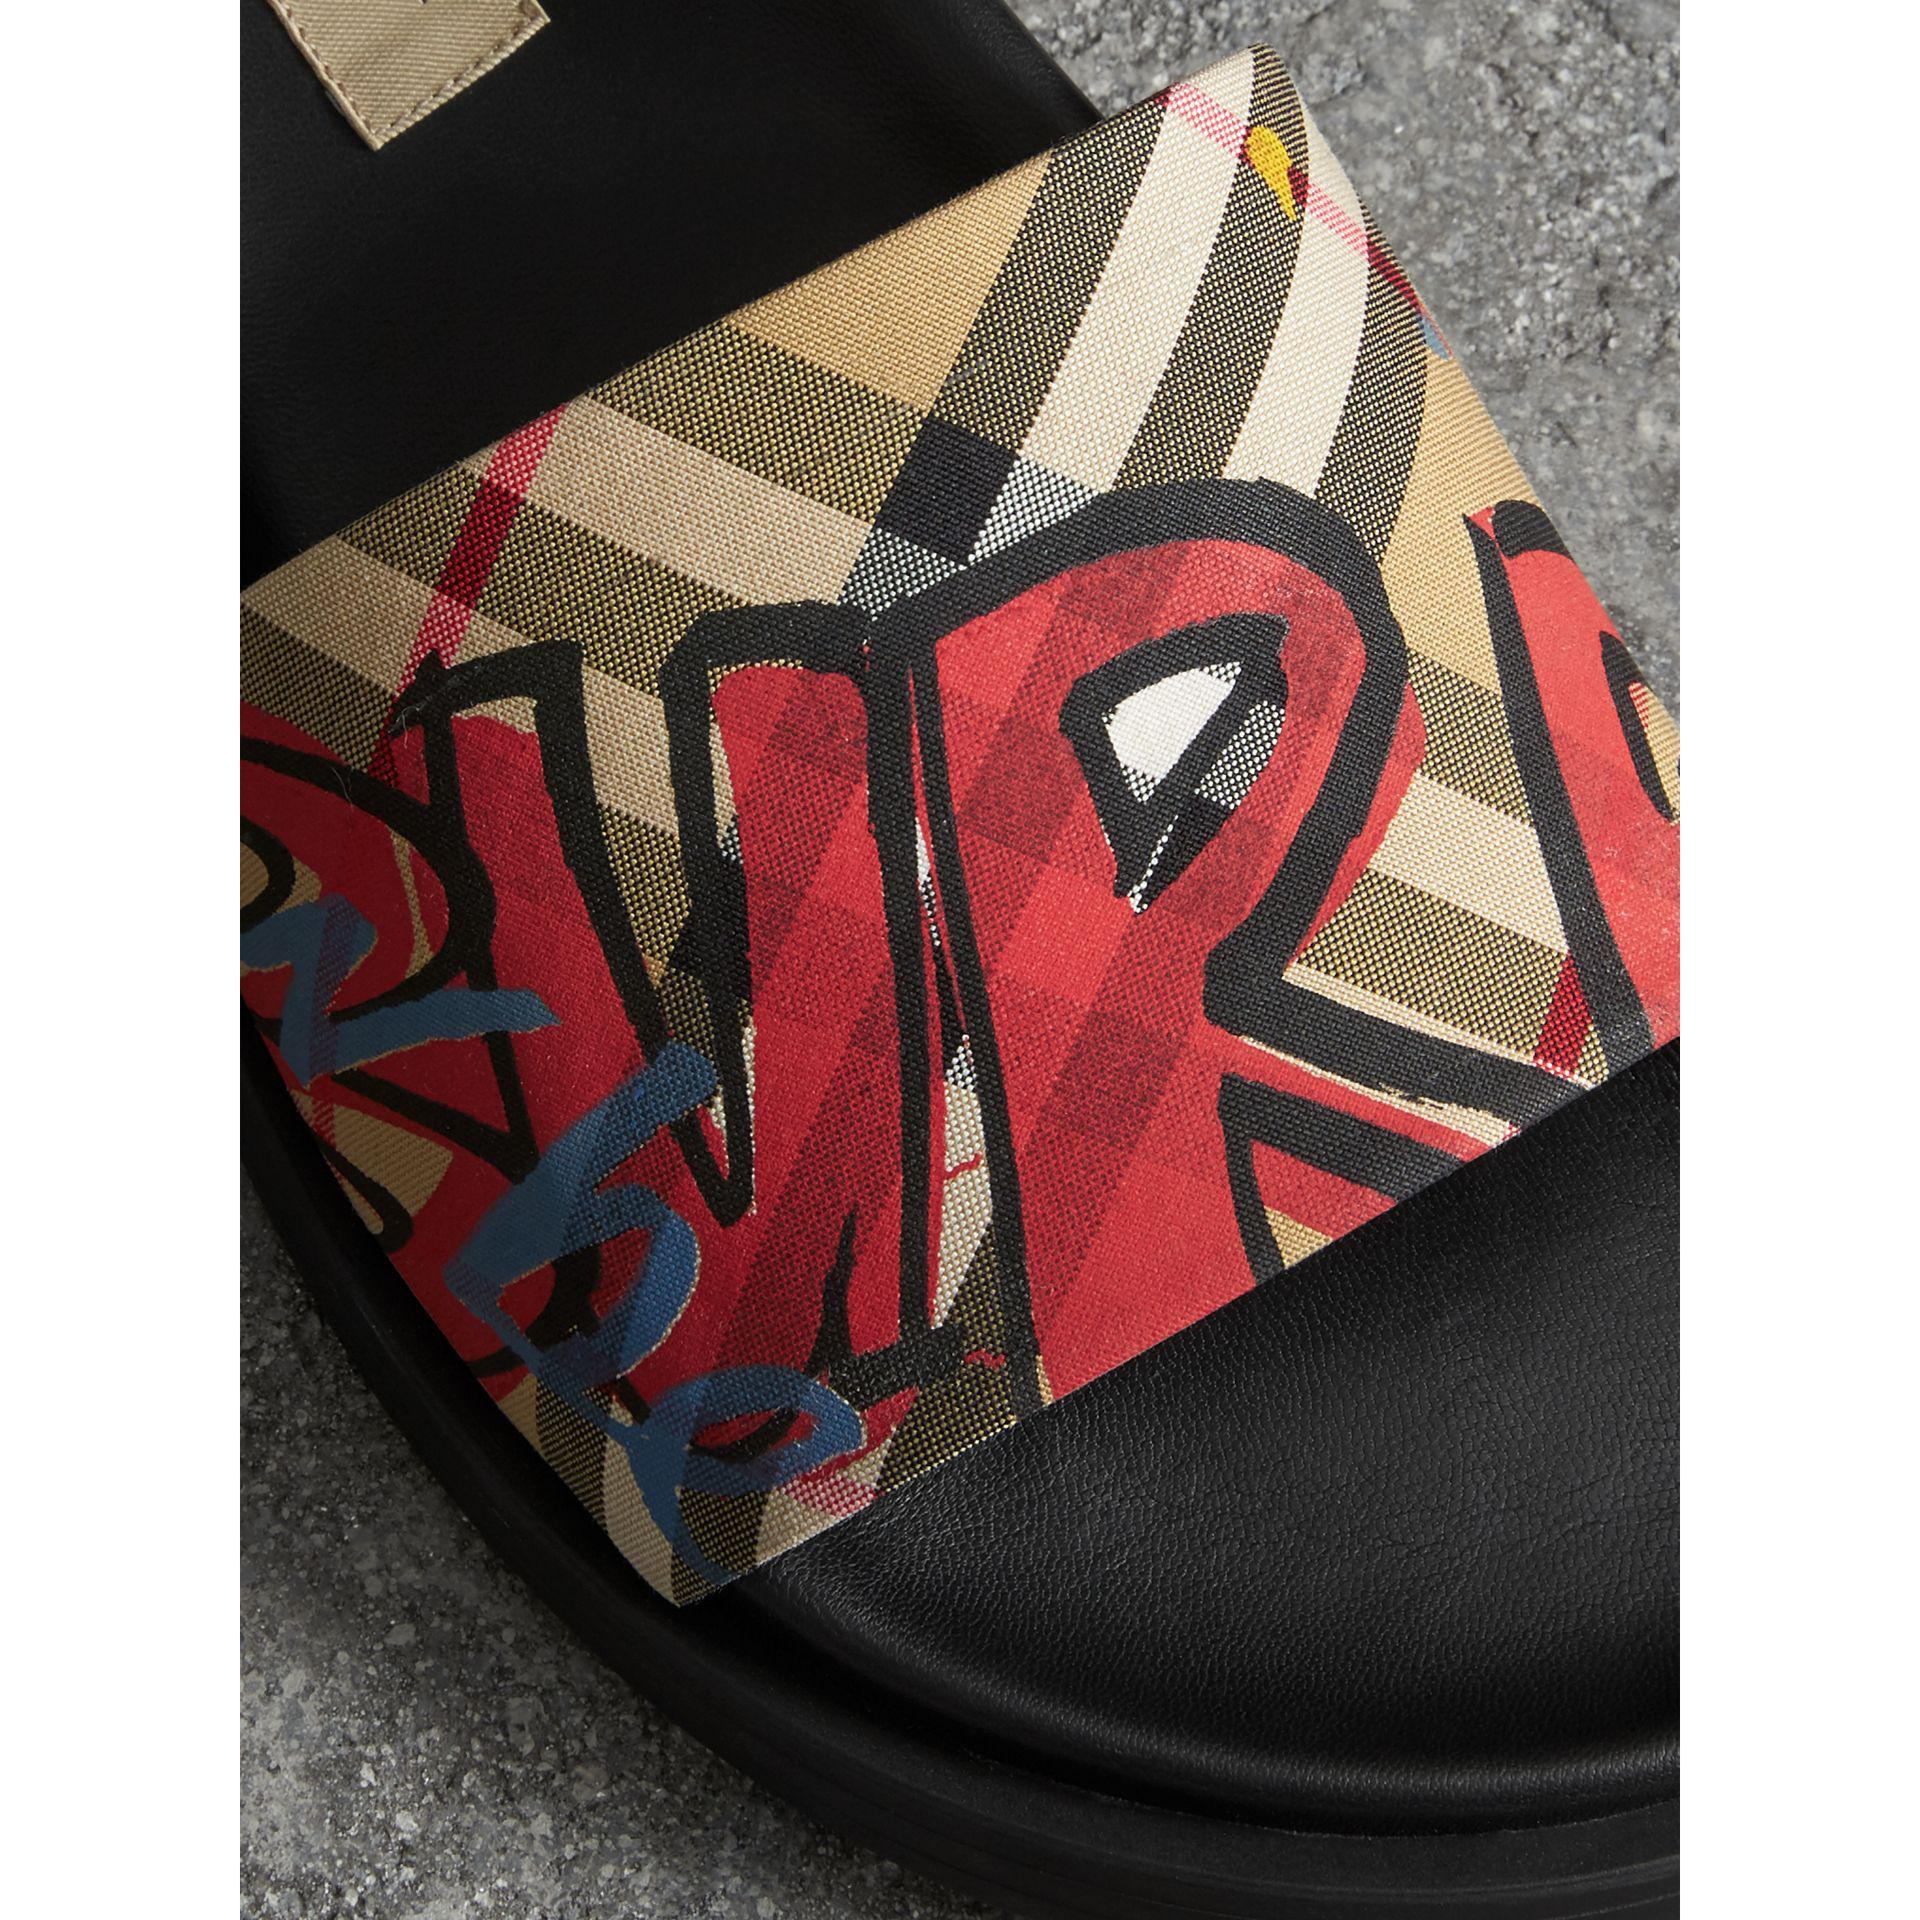 f1ce73fe6ded Lyst - Burberry Graffiti Print Vintage Check And Leather Slides